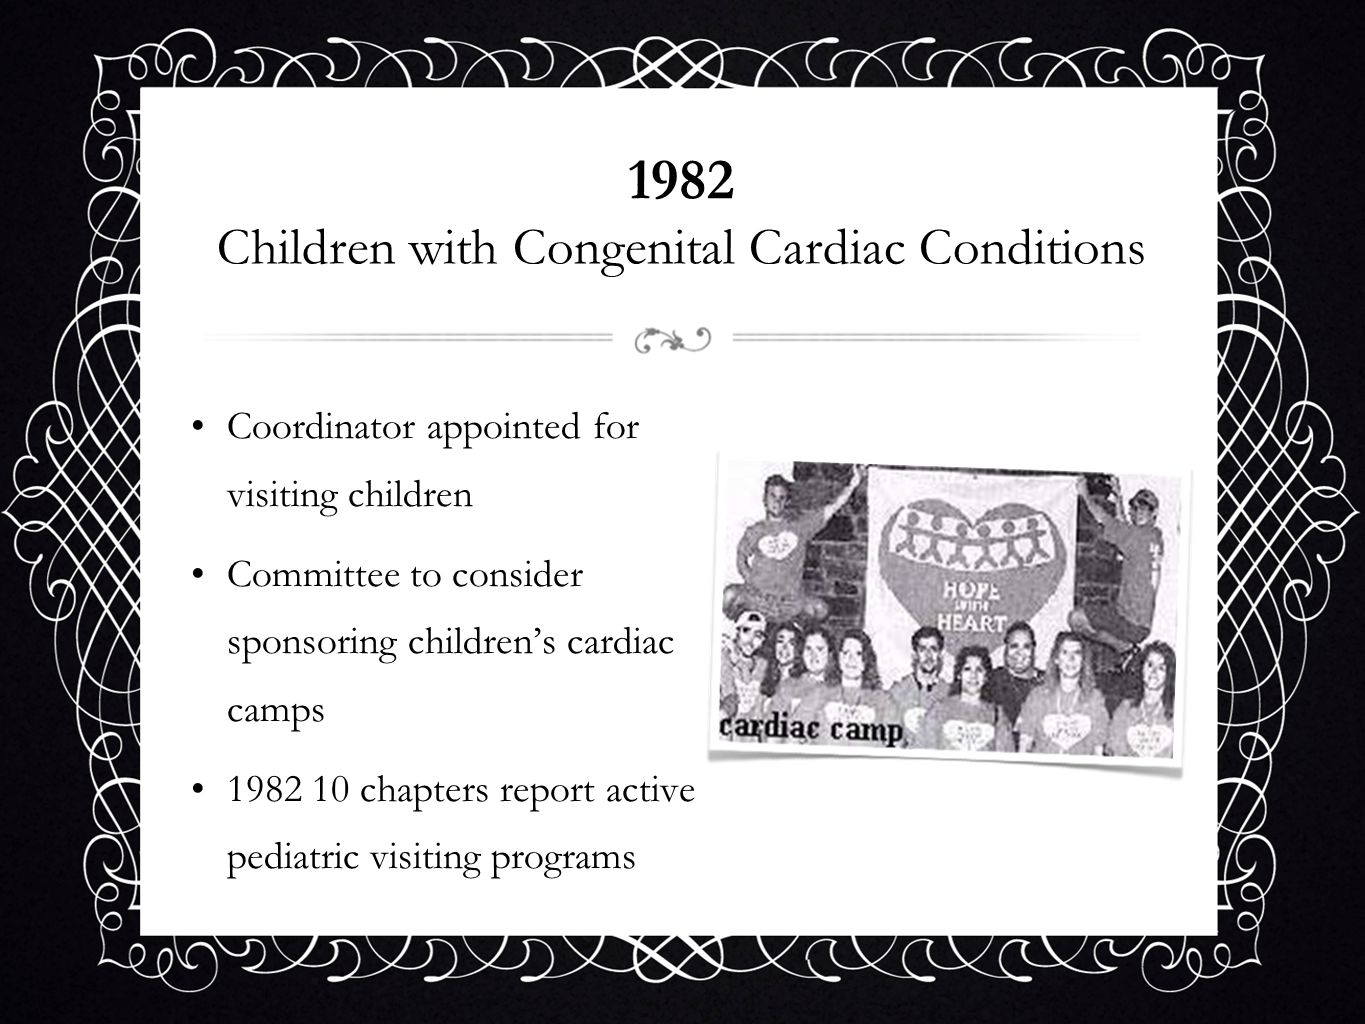 1982 Children with Congenital Cardiac Conditions